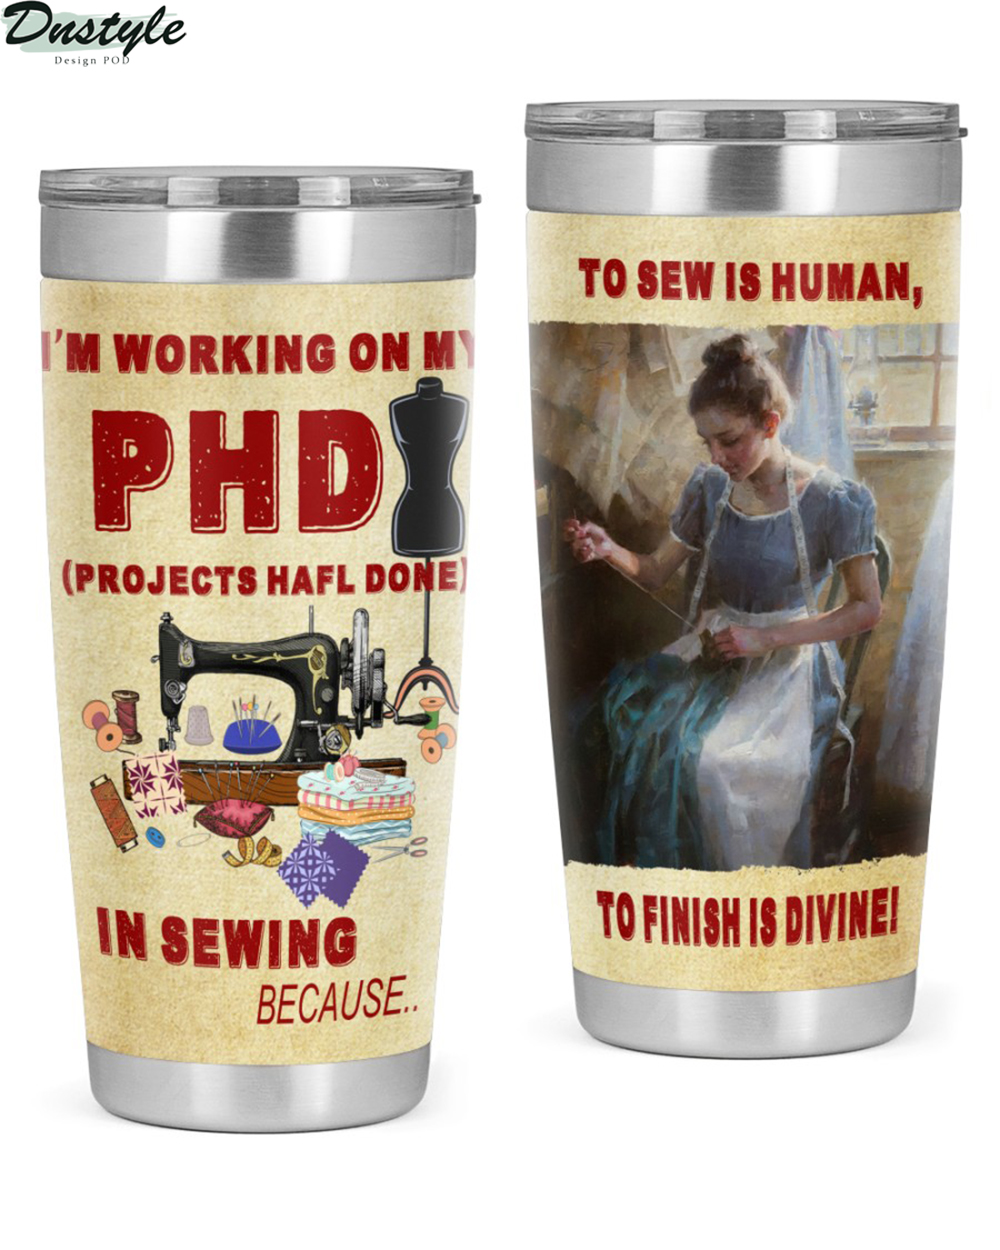 I'm working on my PHD in sewing tumbler